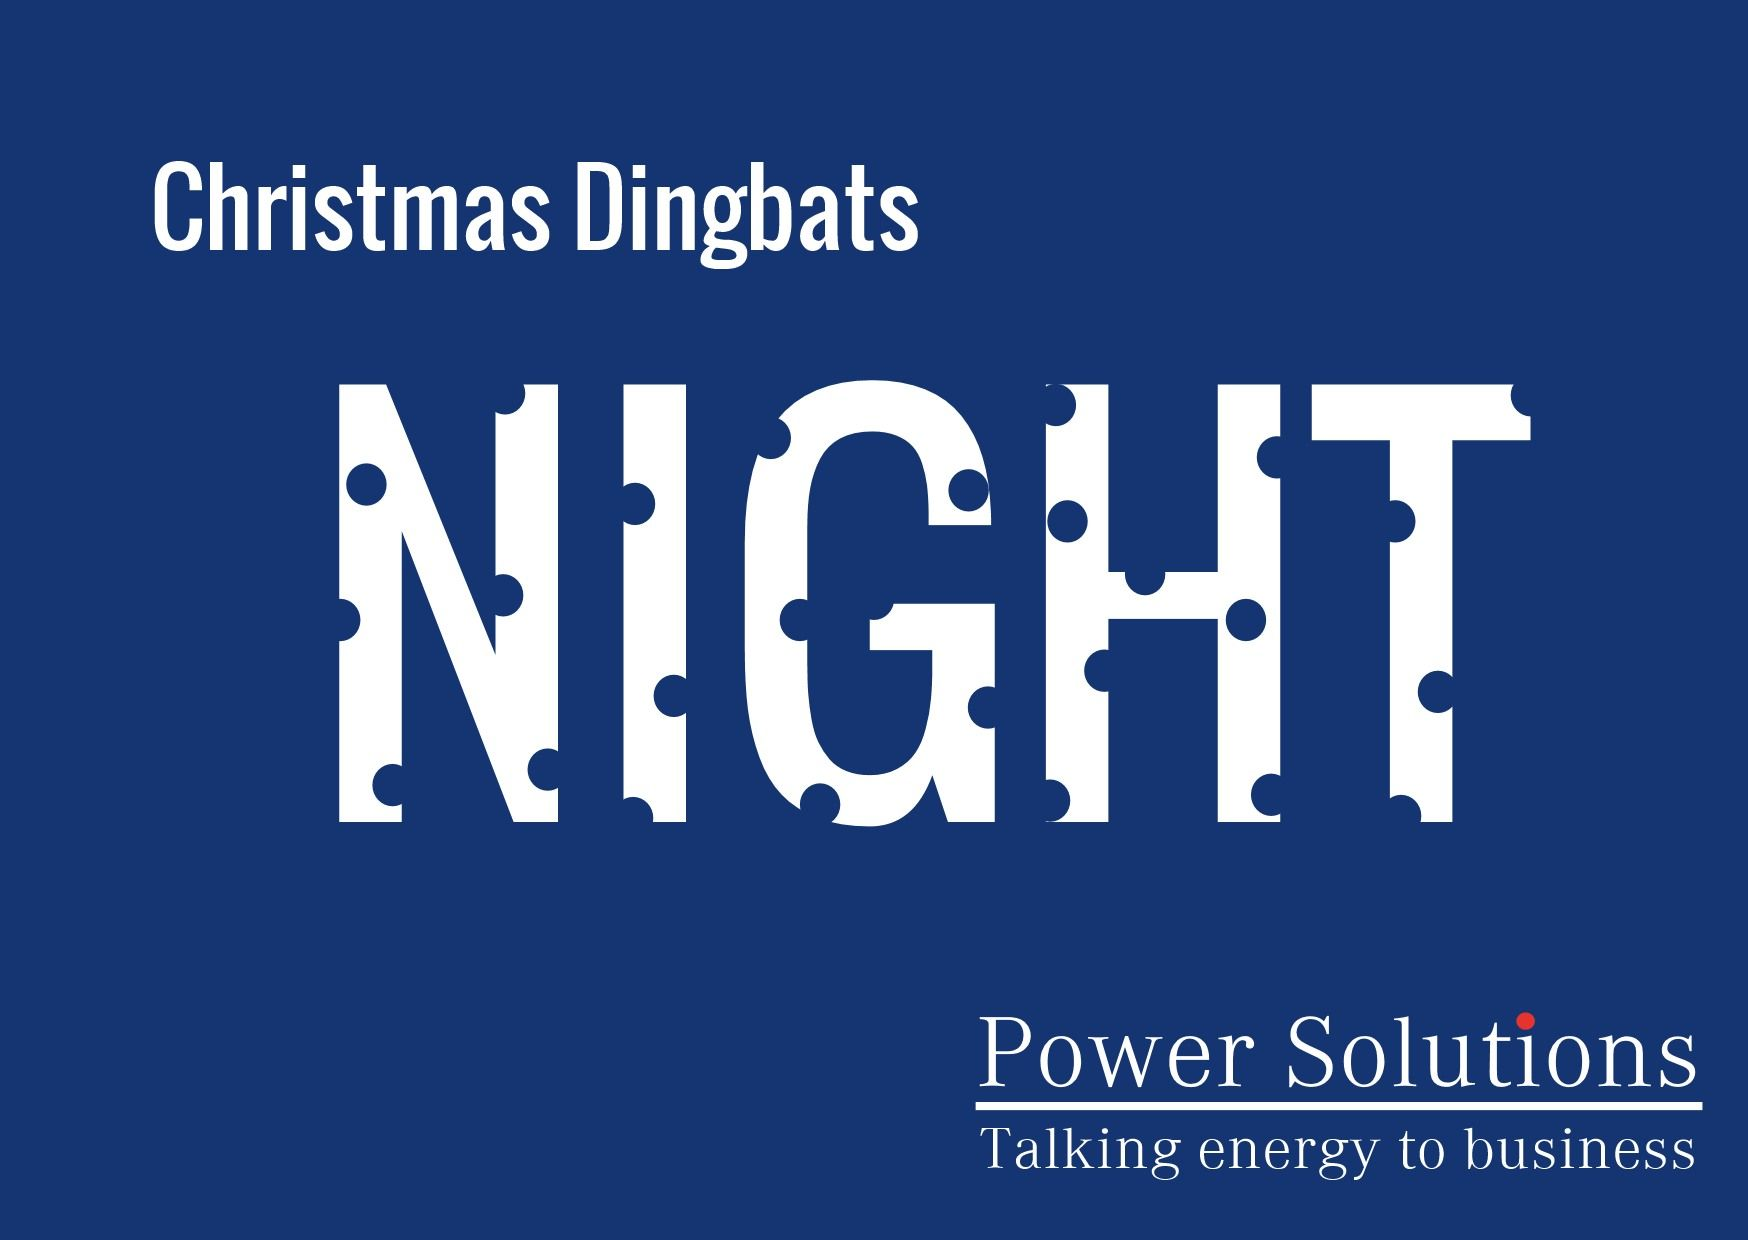 20 Festive Christmas Dingbats Answers At The End Let Us Know How